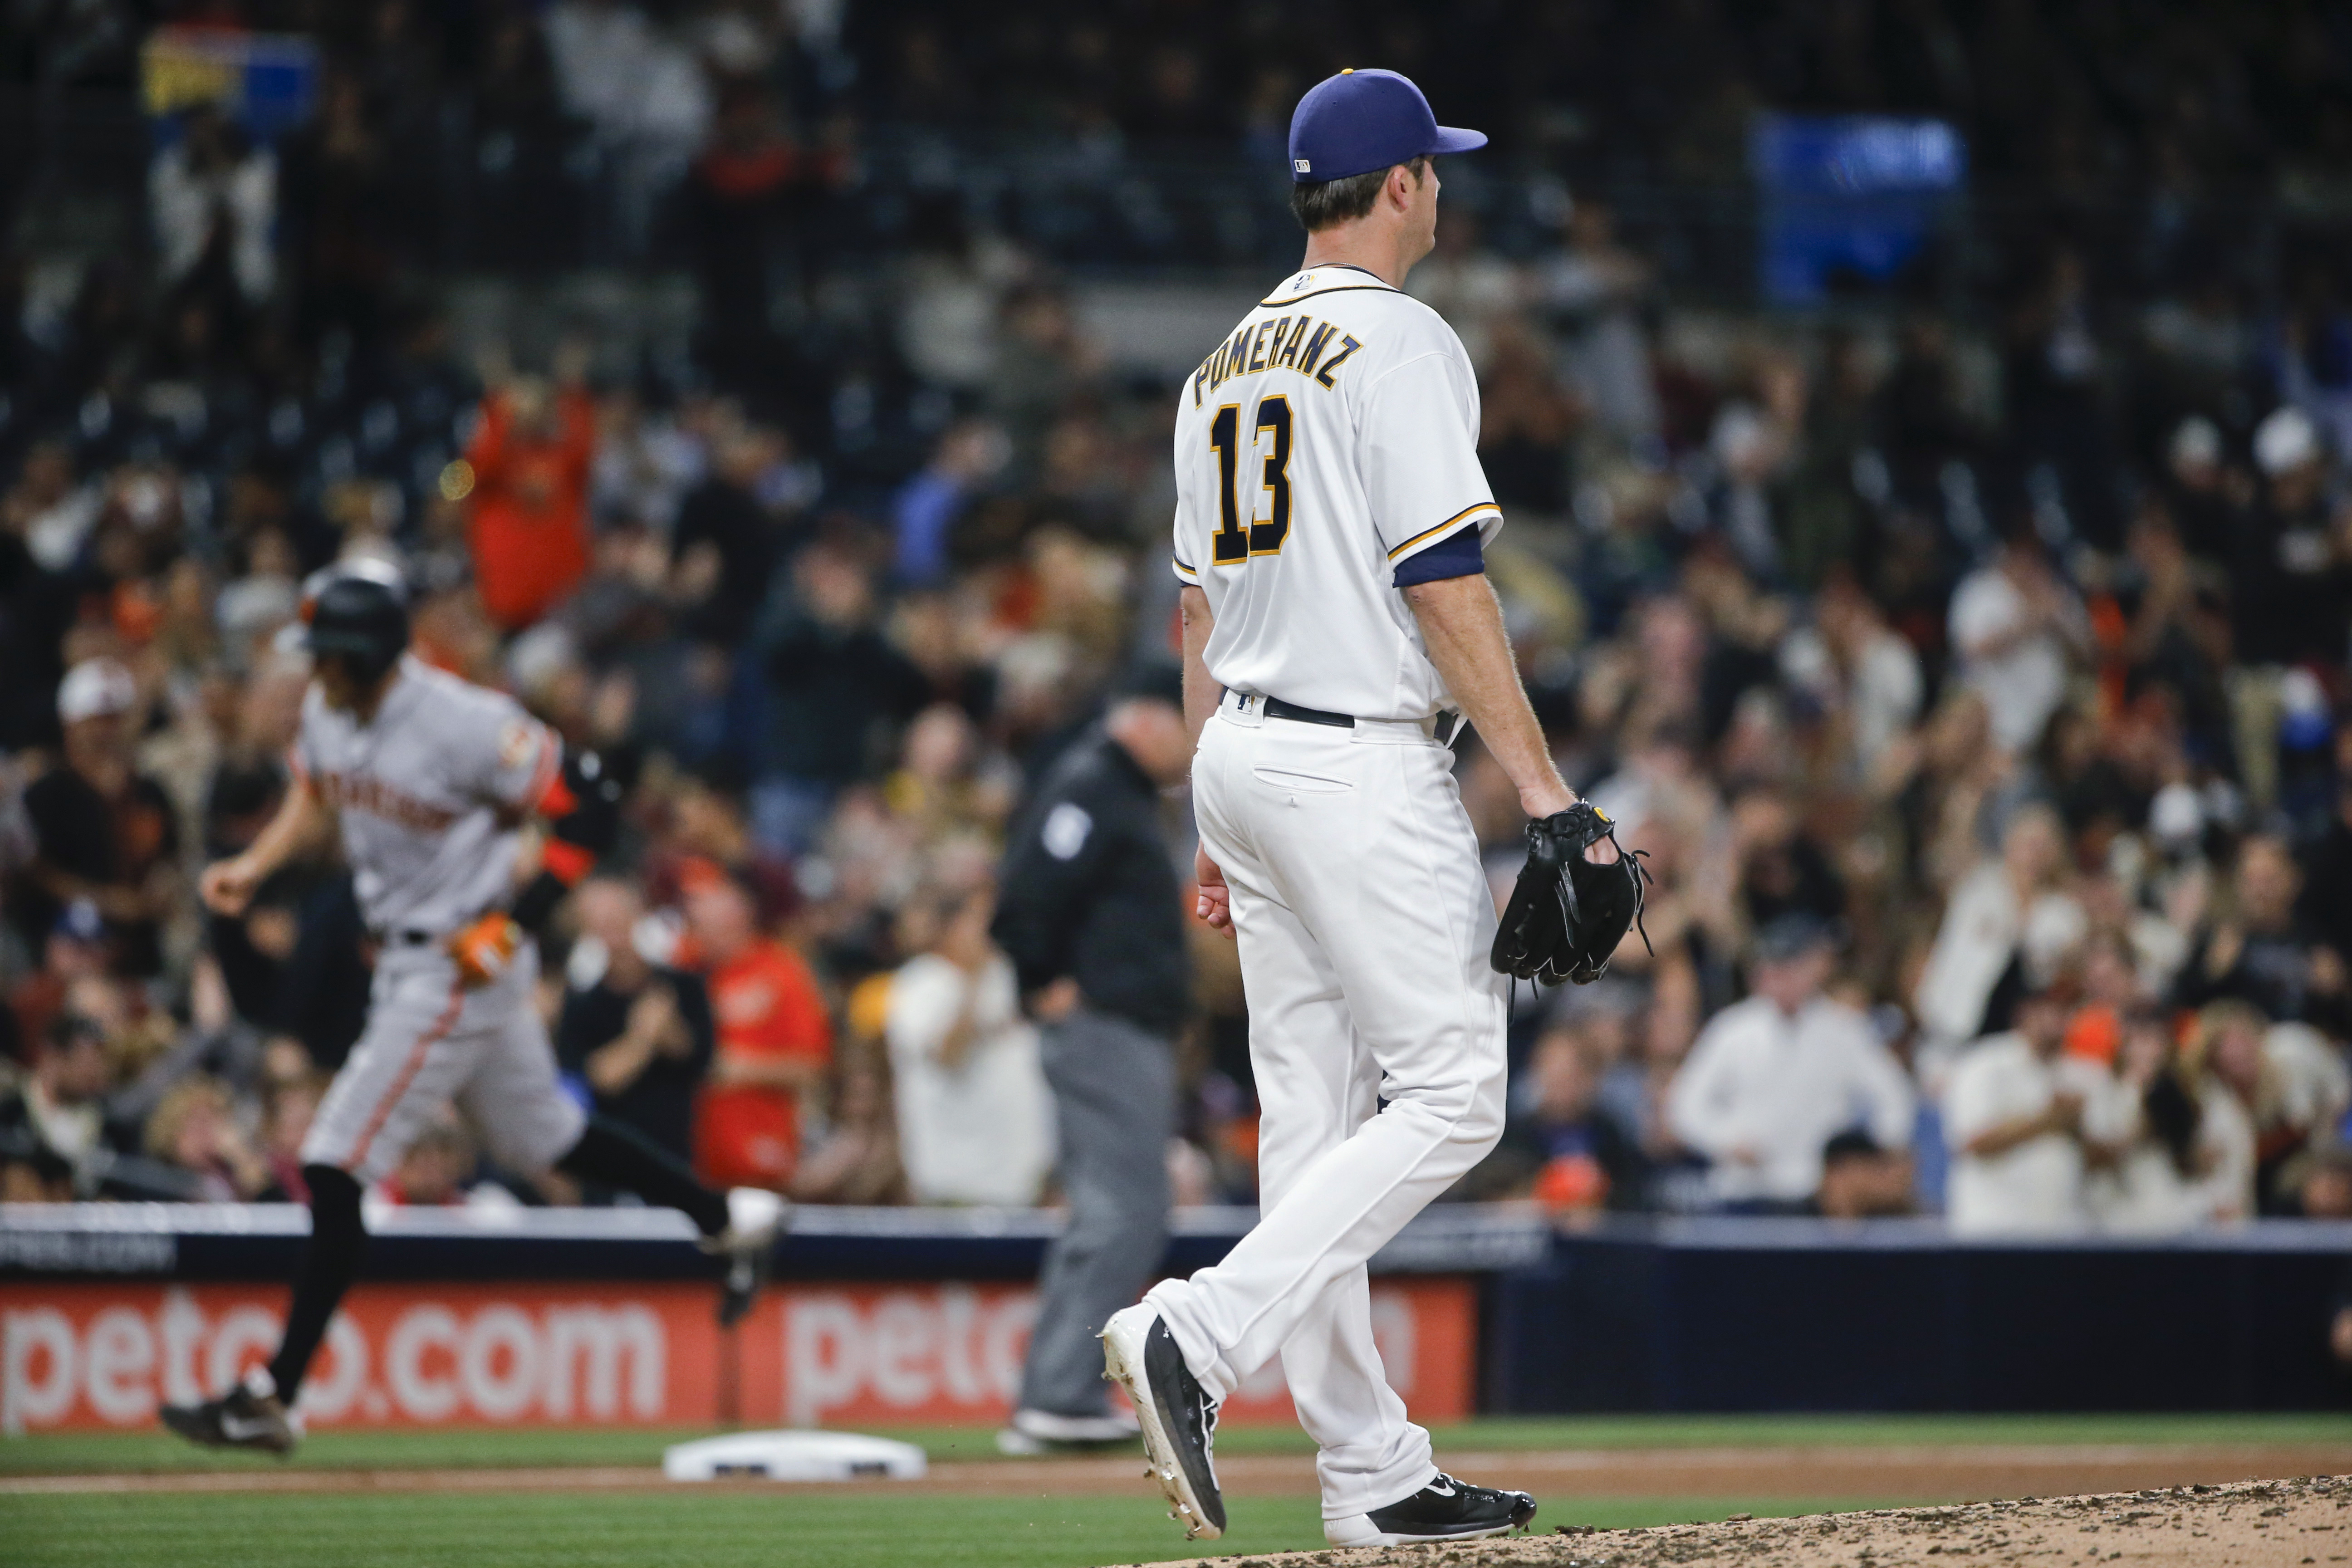 San Diego Padres starting pitcher Drew Pomeranz returns to the mound as San Francisco Giants' Hunter Pence rounds the bases with a two-run home run during the fourth inning of a baseball game Wednesday, May 18, 2016, in San Diego. (AP Photo/Lenny Ignelzi)